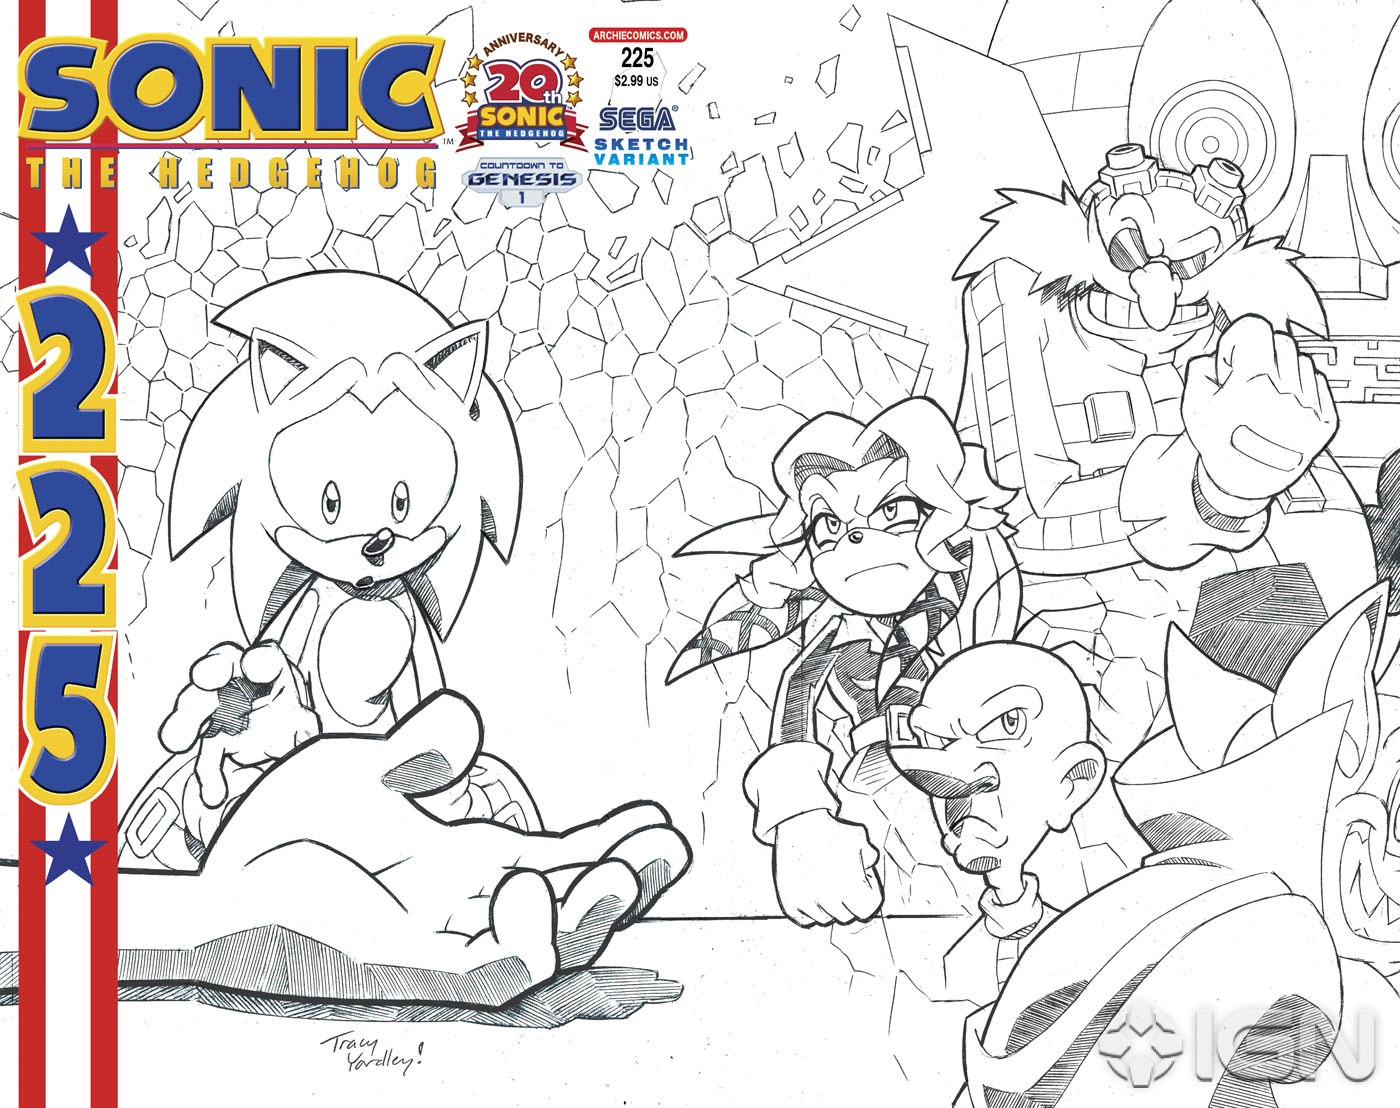 sonic-the-hedgehog-vol-3-20110517014809269